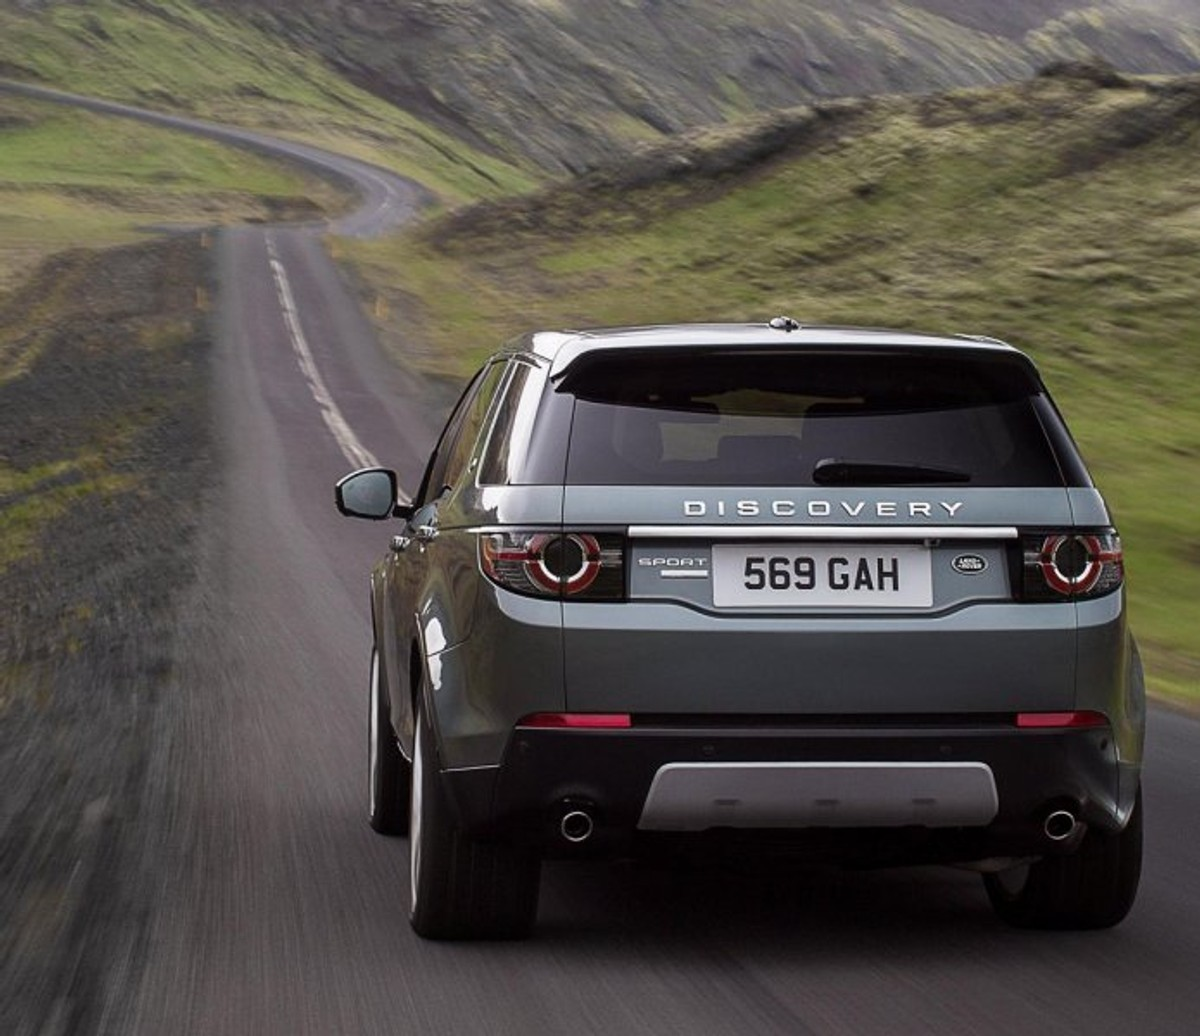 Car Finance Land Rover: Land Rover Discovery Sport Launched